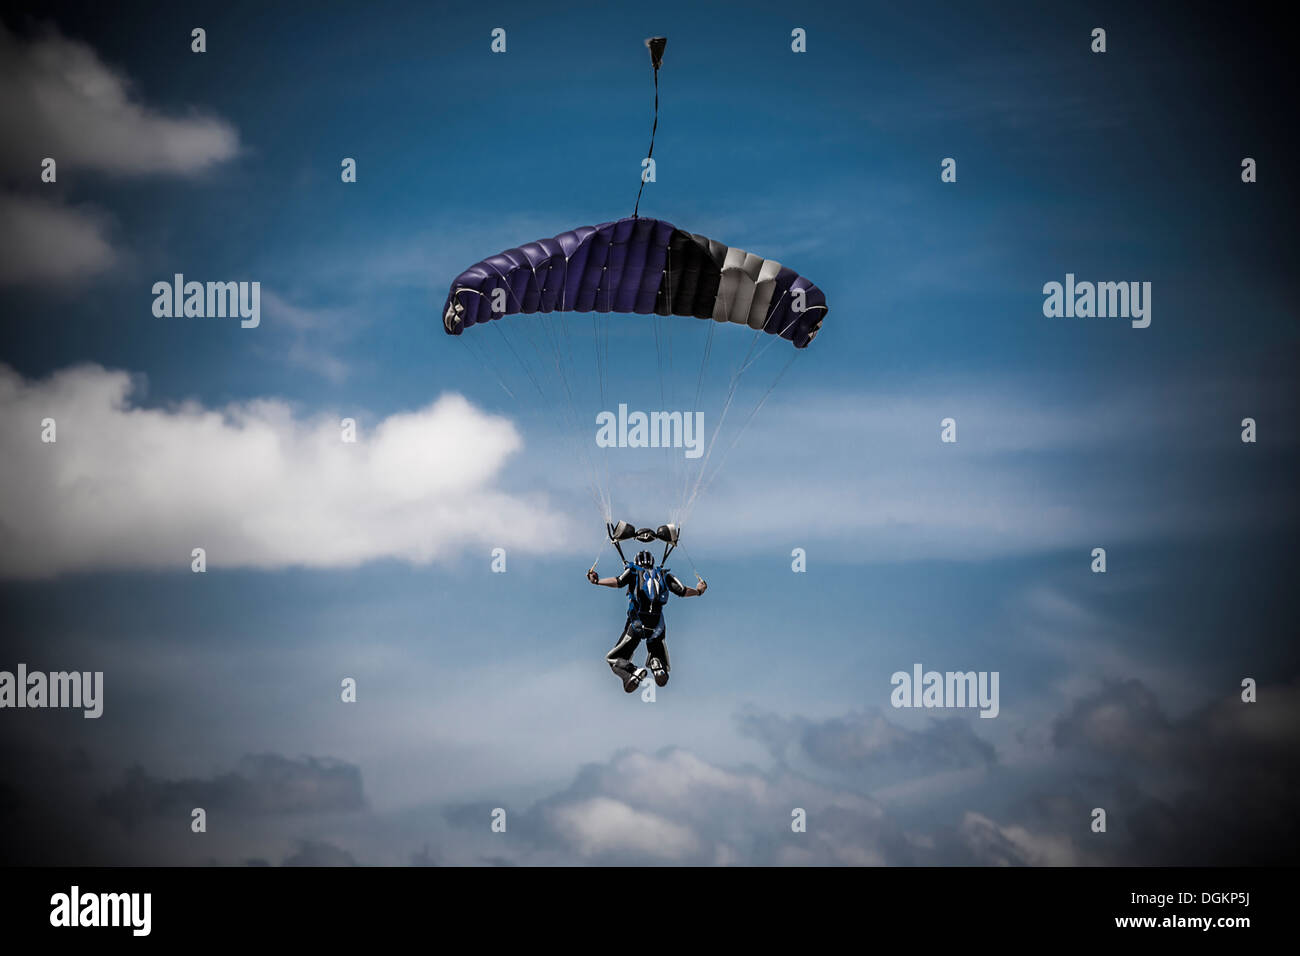 skydiver-landing-with-parachute-open-and